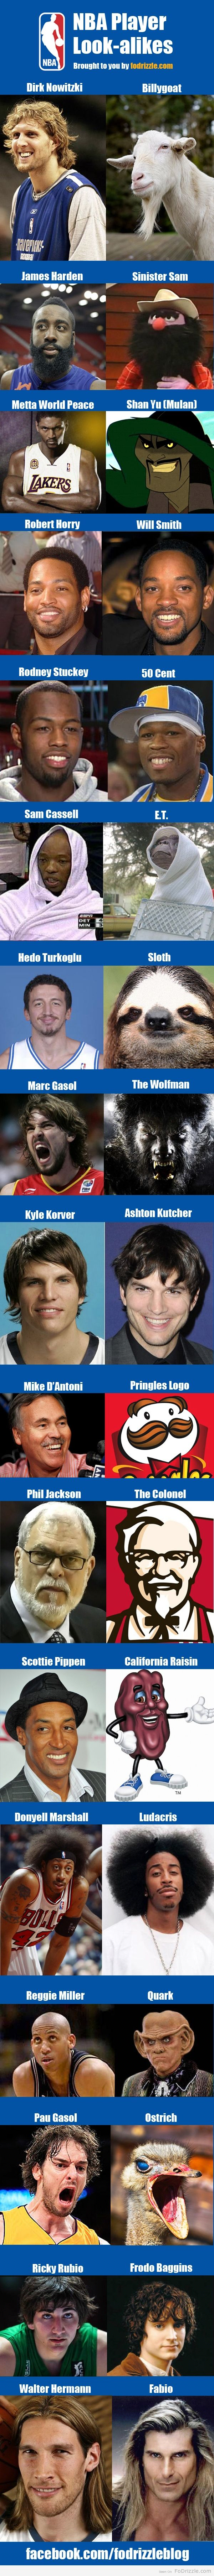 NBA Look-alikes